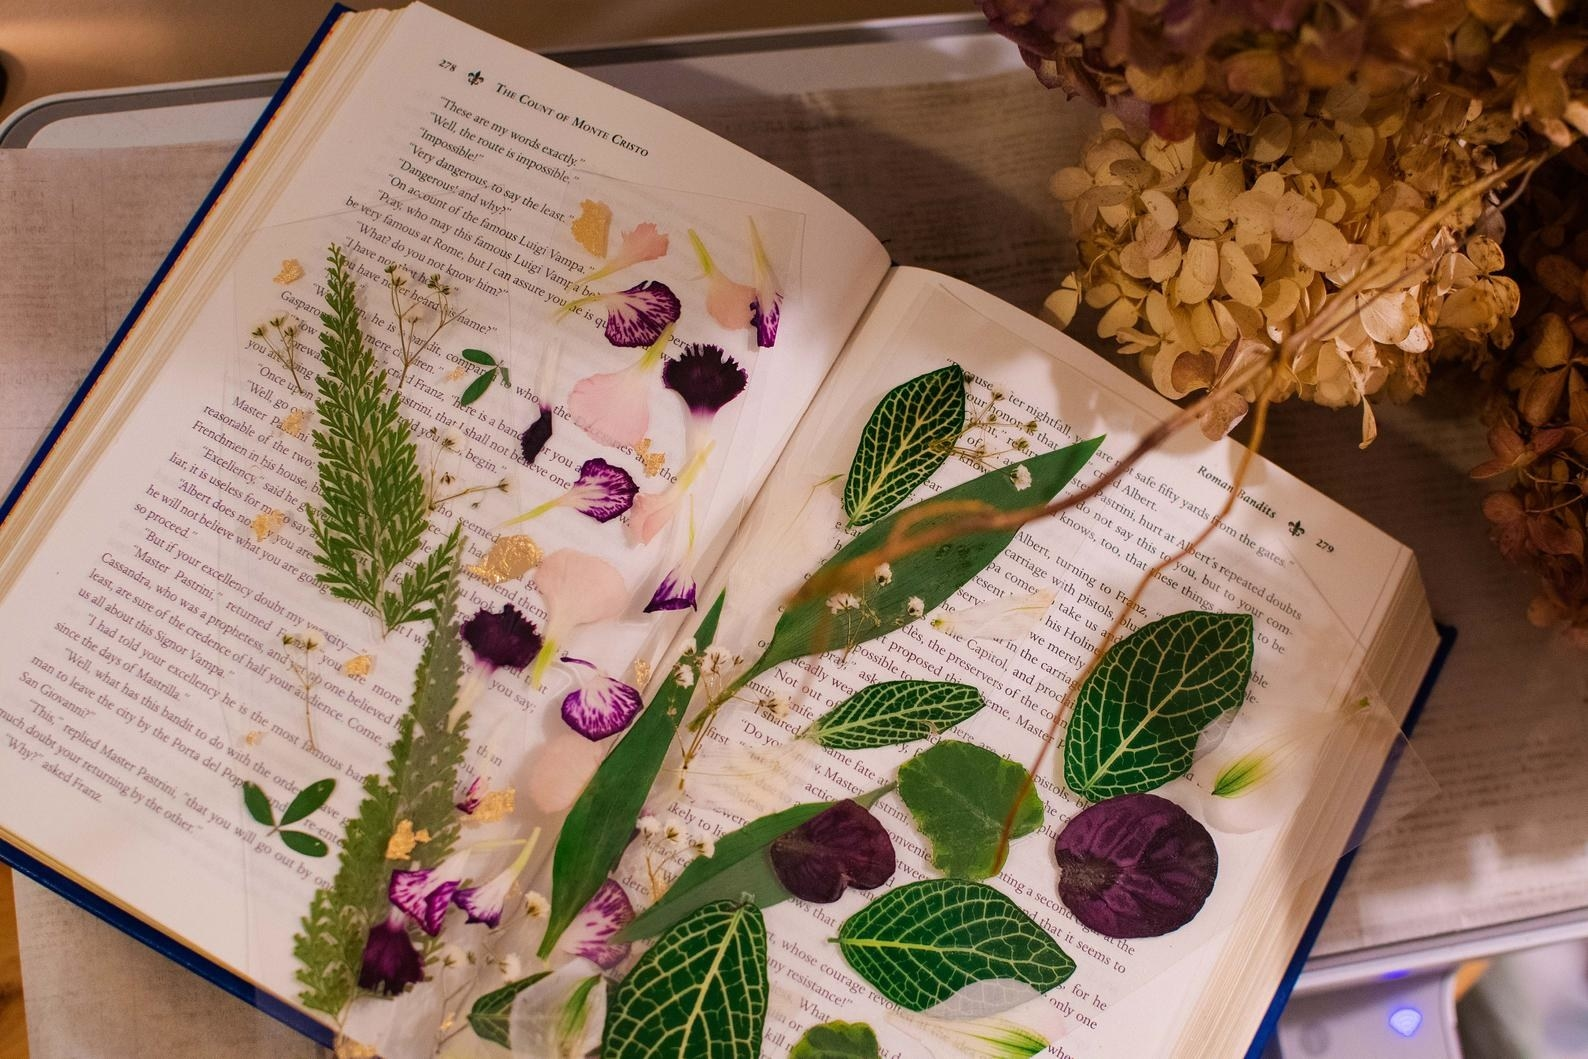 the pressed flower bookmarks